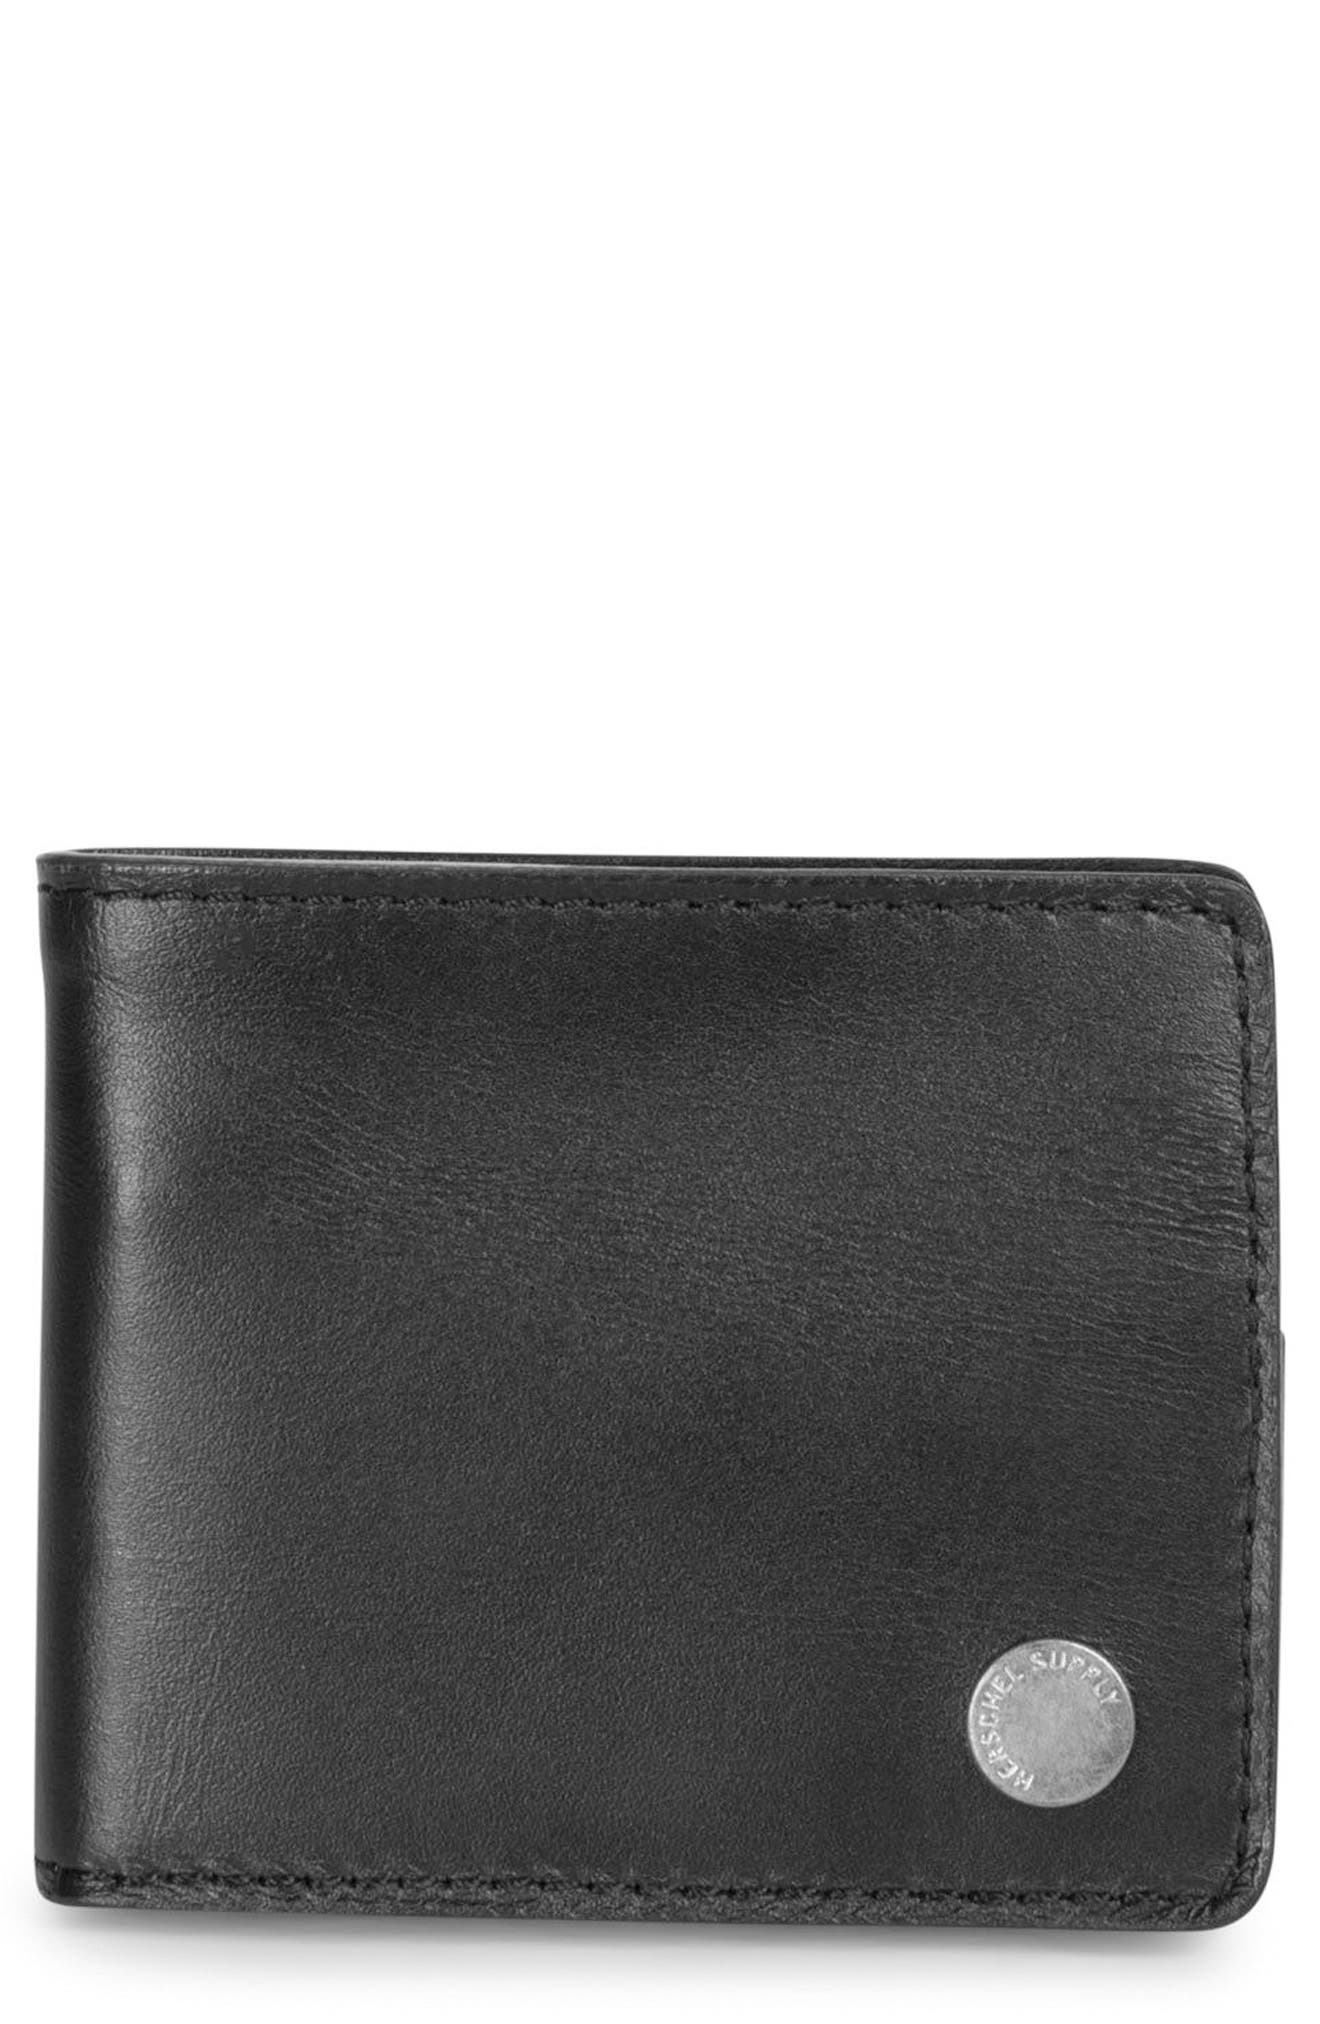 Vincent Saddle Leather Wallet,                             Main thumbnail 1, color,                             001